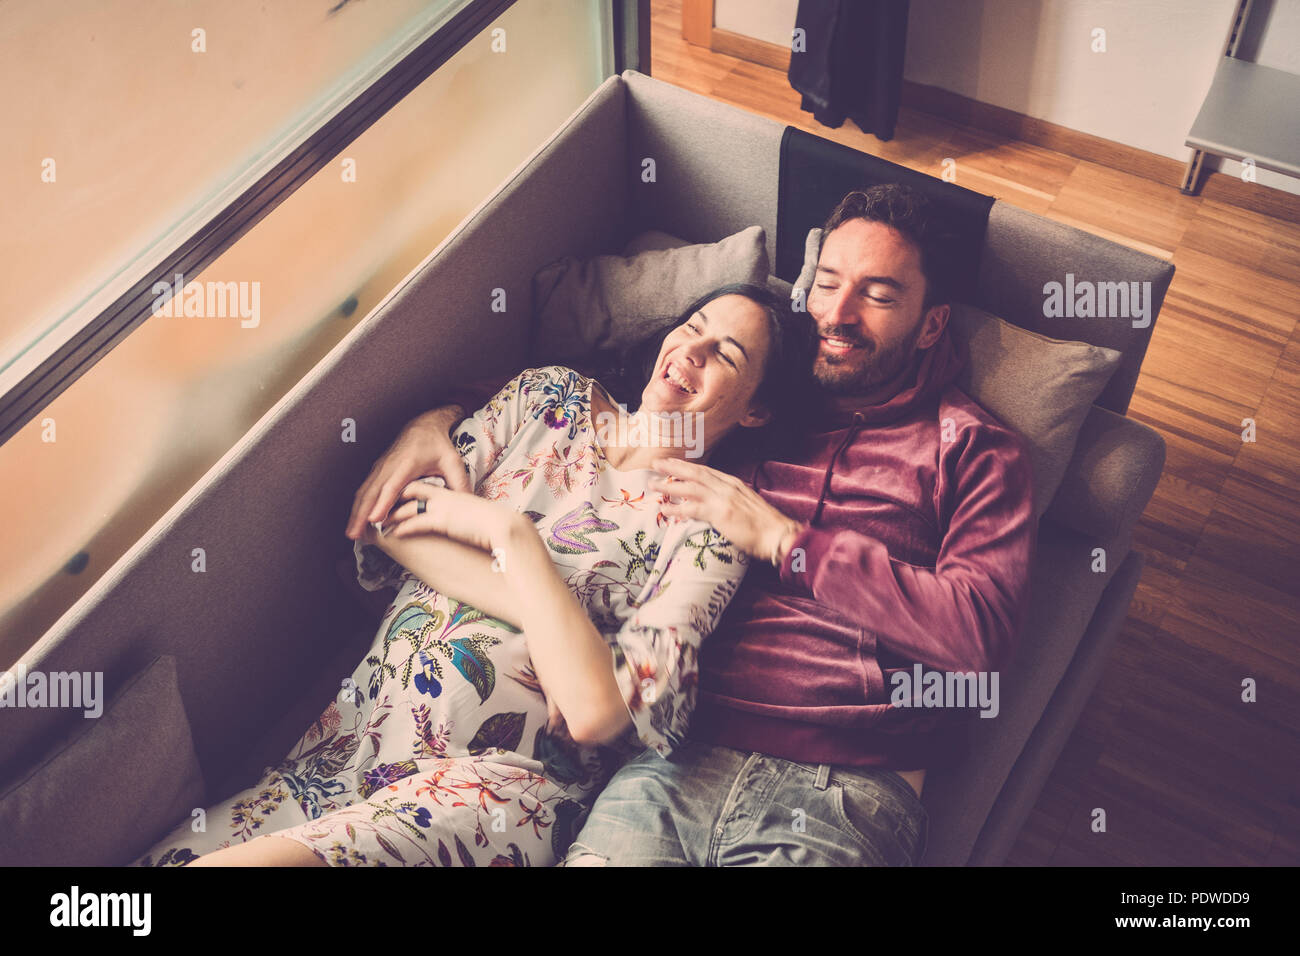 beautiful couple of models lay down on the sofa at home enjoying the lifestyle and relaxing. smile and cheerful people having leisure activity indoor - Stock Image